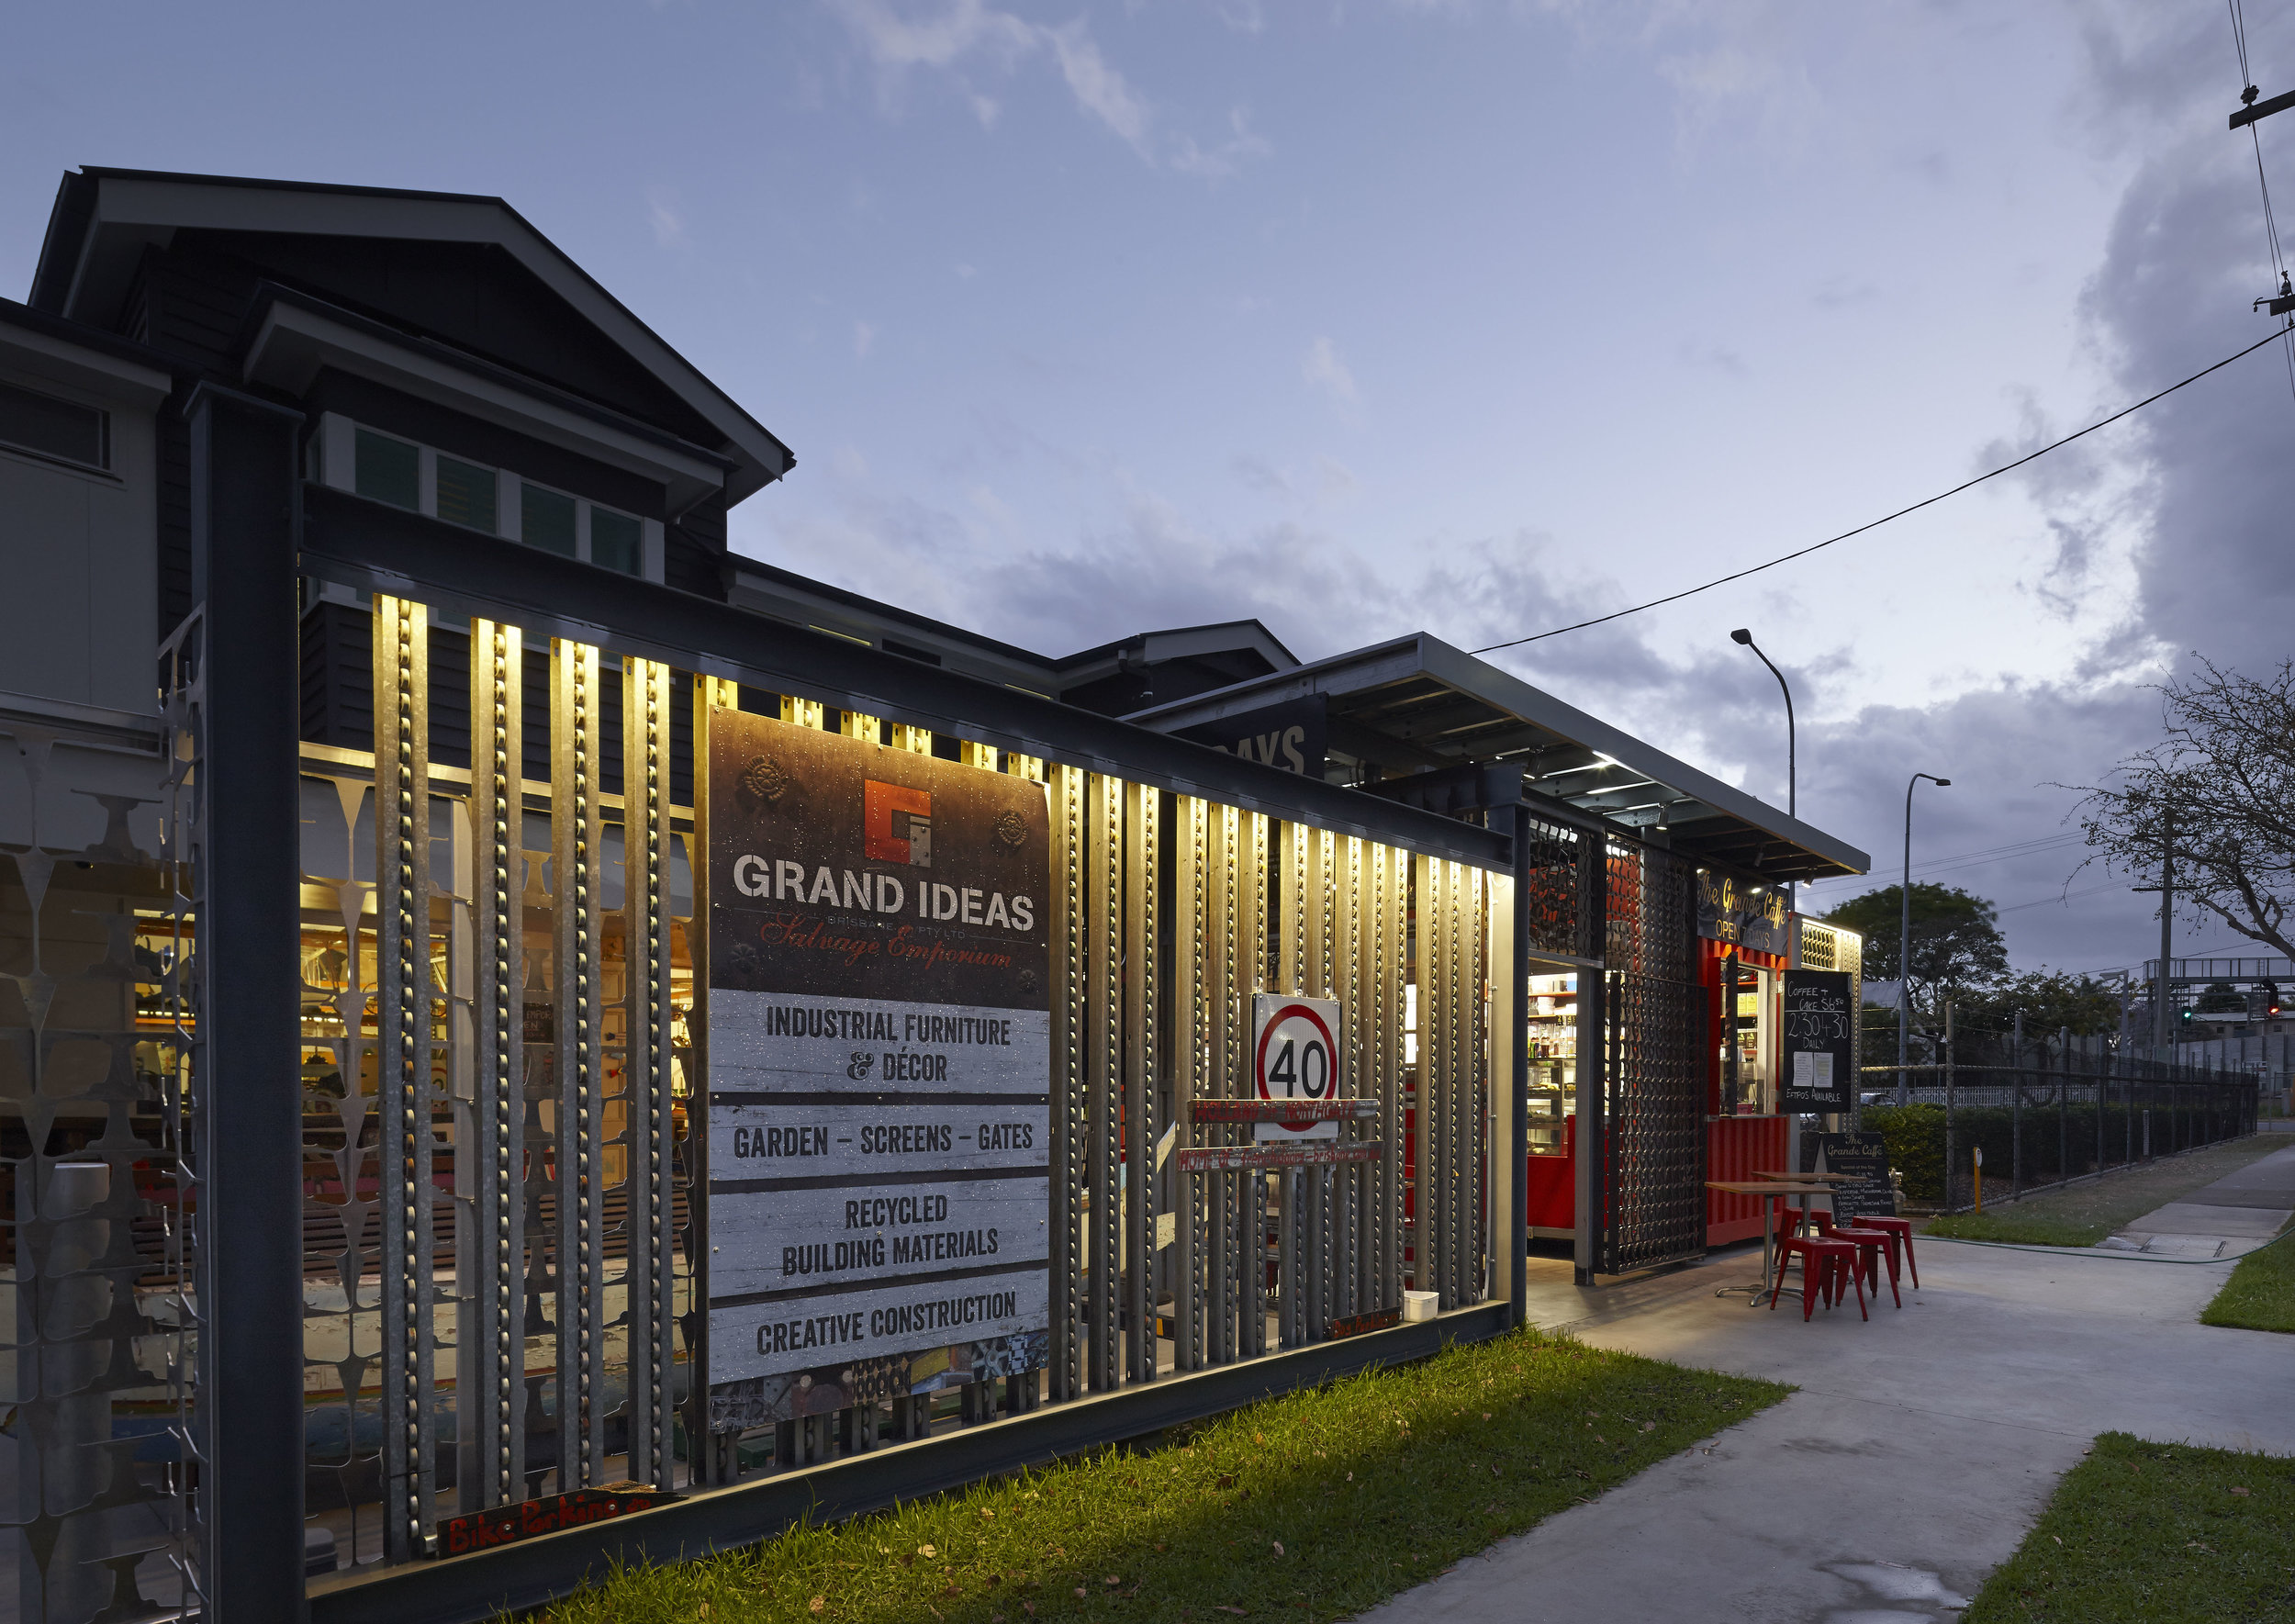 Guymer-bailey-architects-Grand-Ideas-cafe-commercial-02.jpg